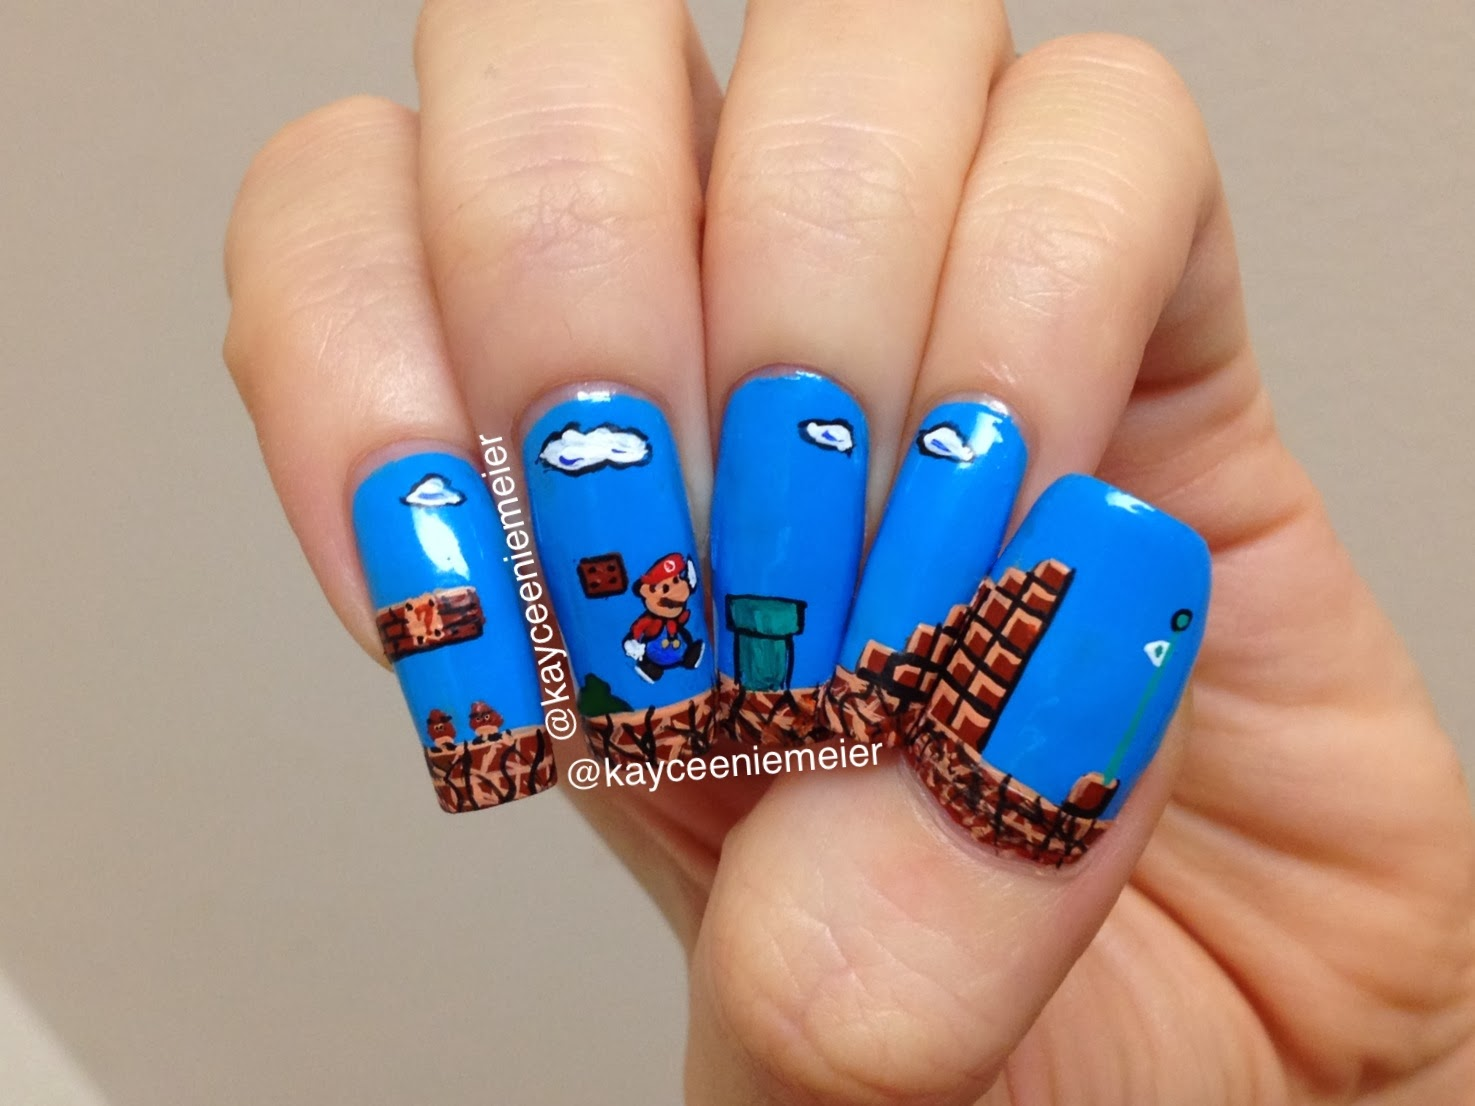 RETRO KIMMER'S BLOG: REALLY COOL NAIL ART FROM THE WEB